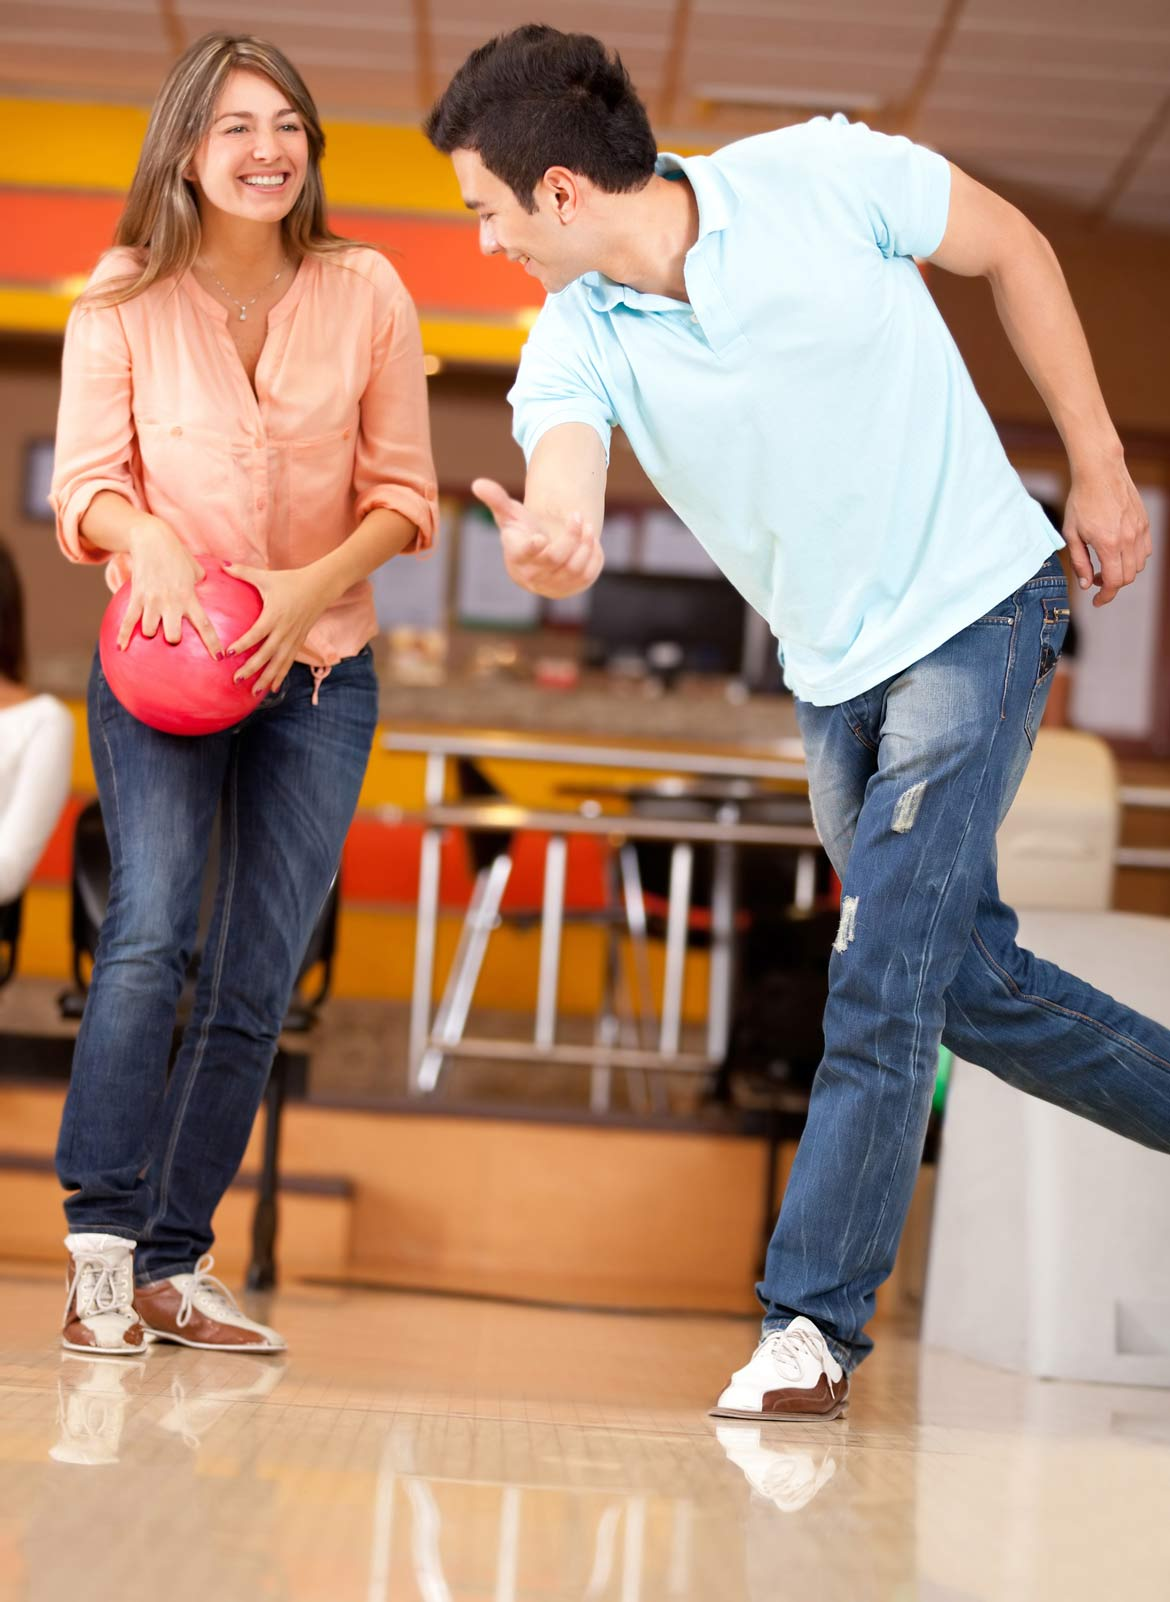 A man showing a woman how to play bowling